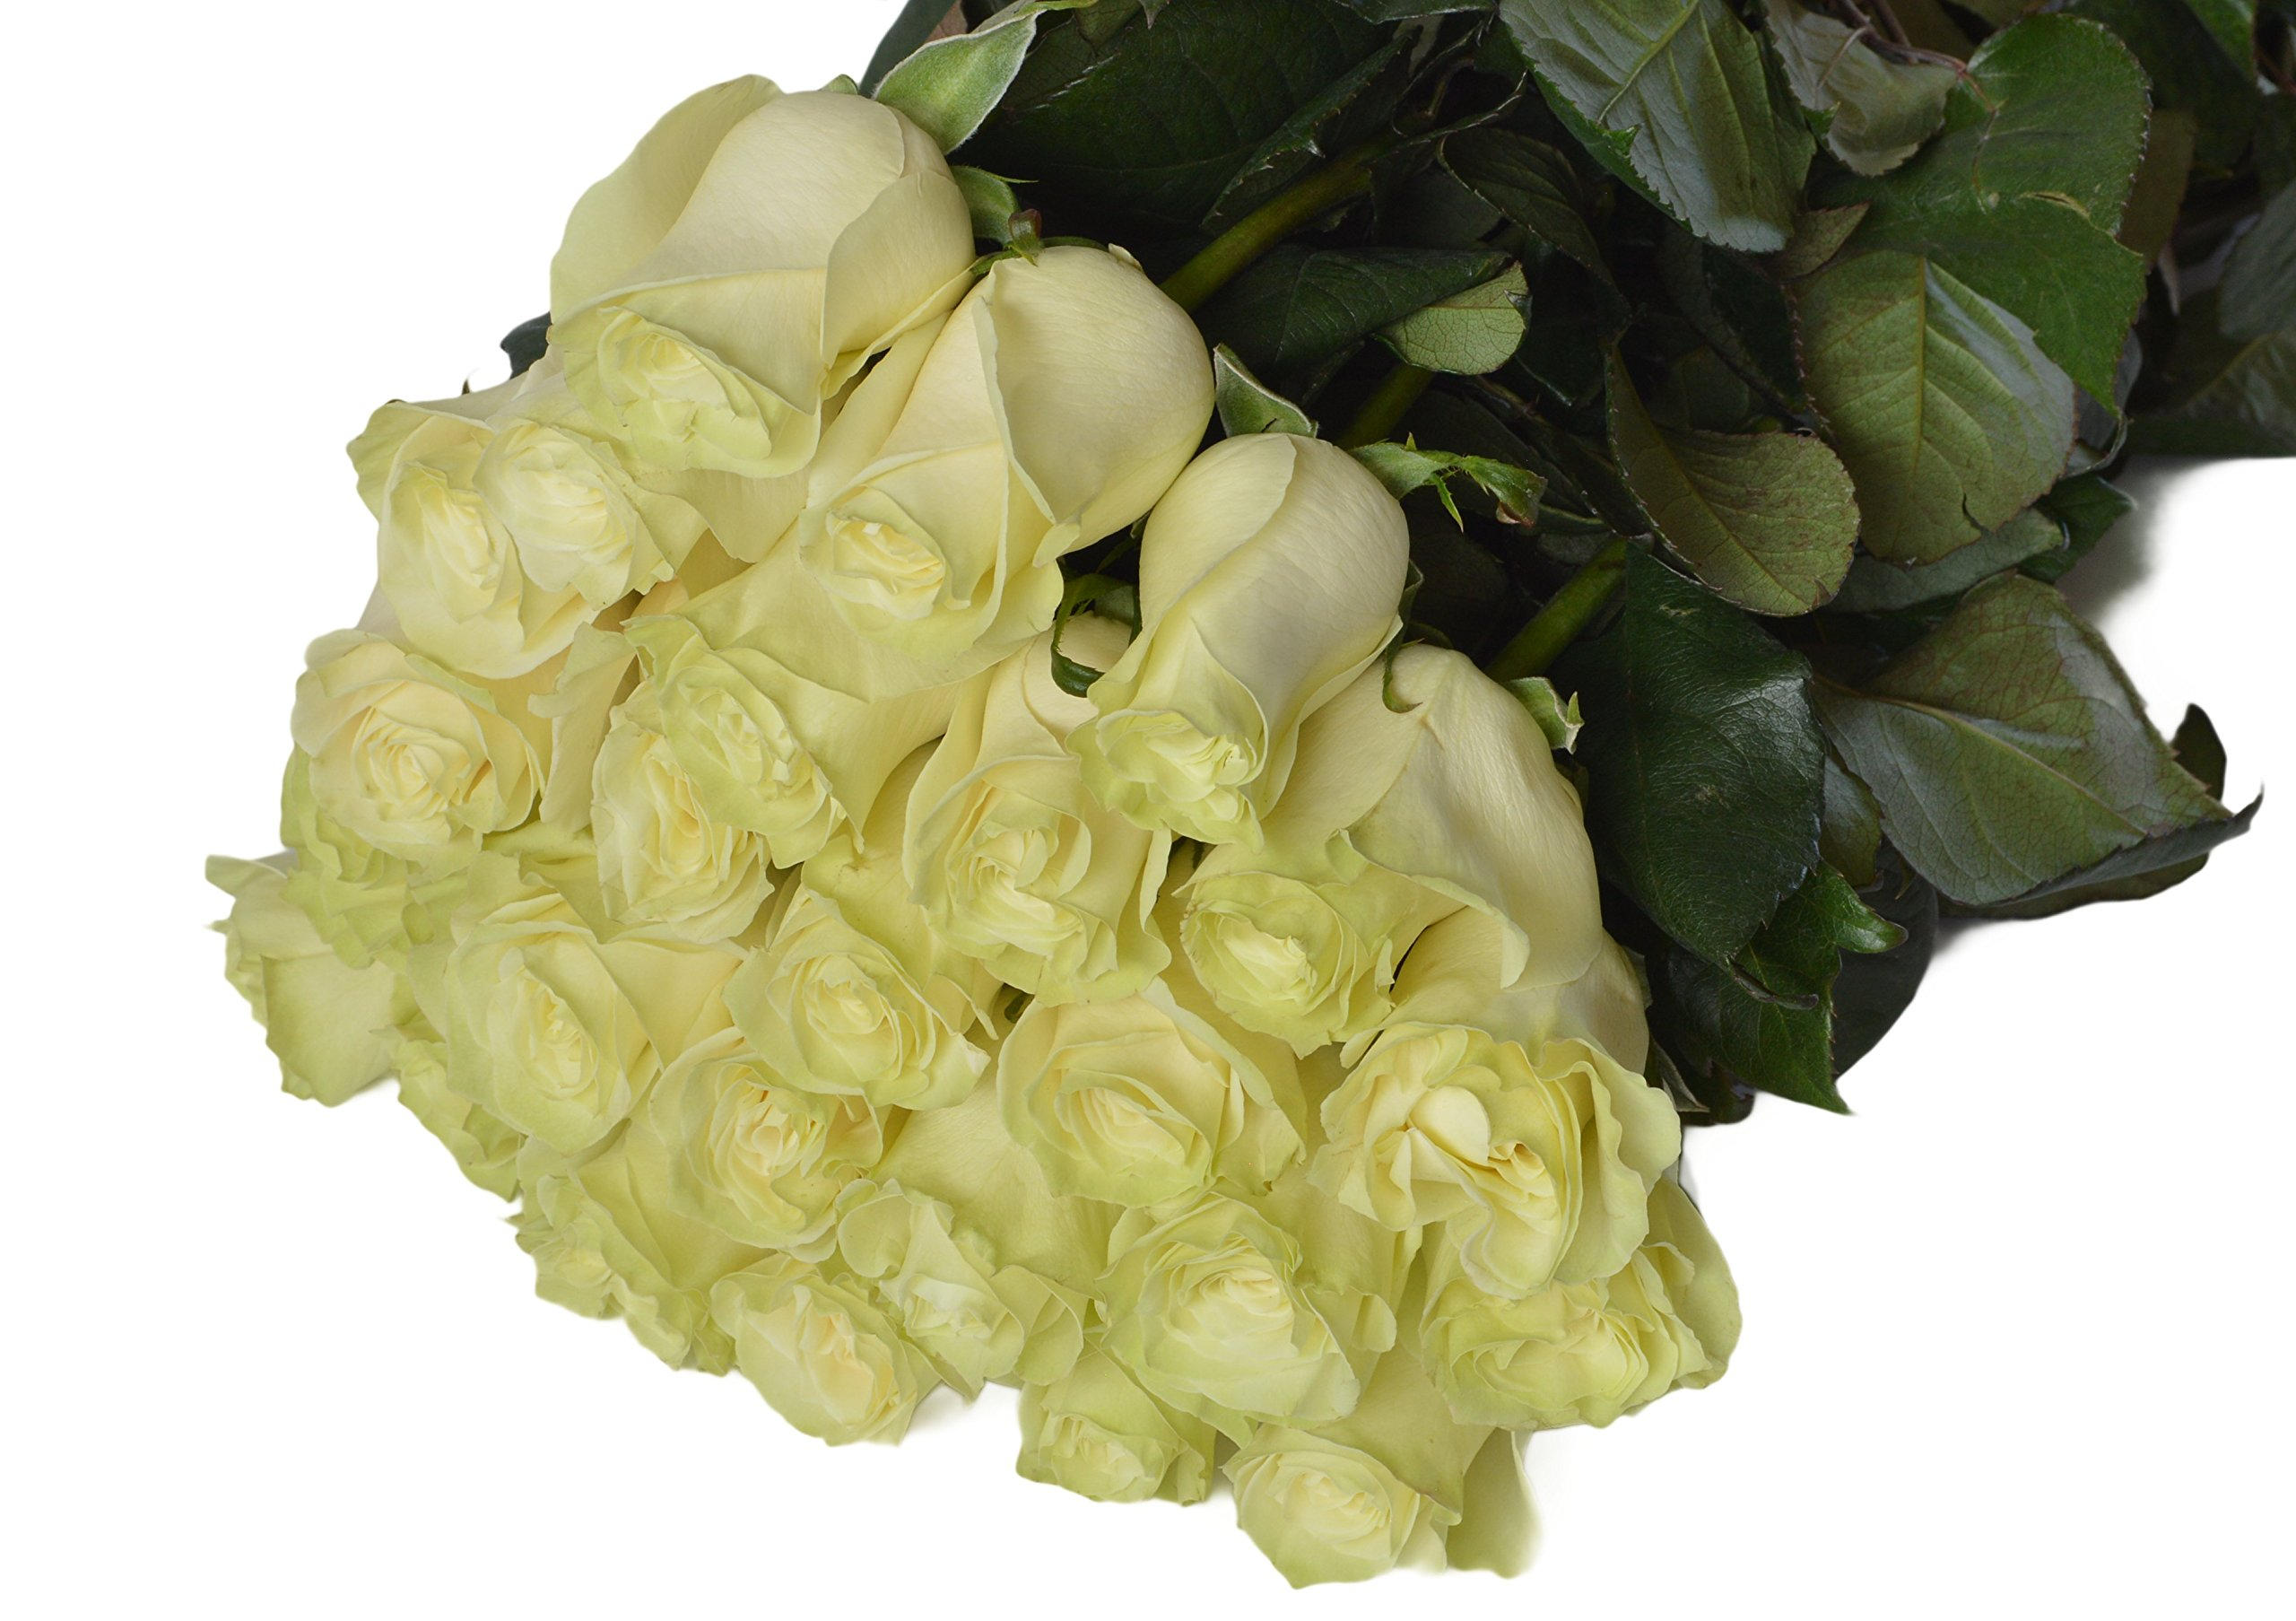 Cheap Flowers Pictures White Roses Find Flowers Pictures White